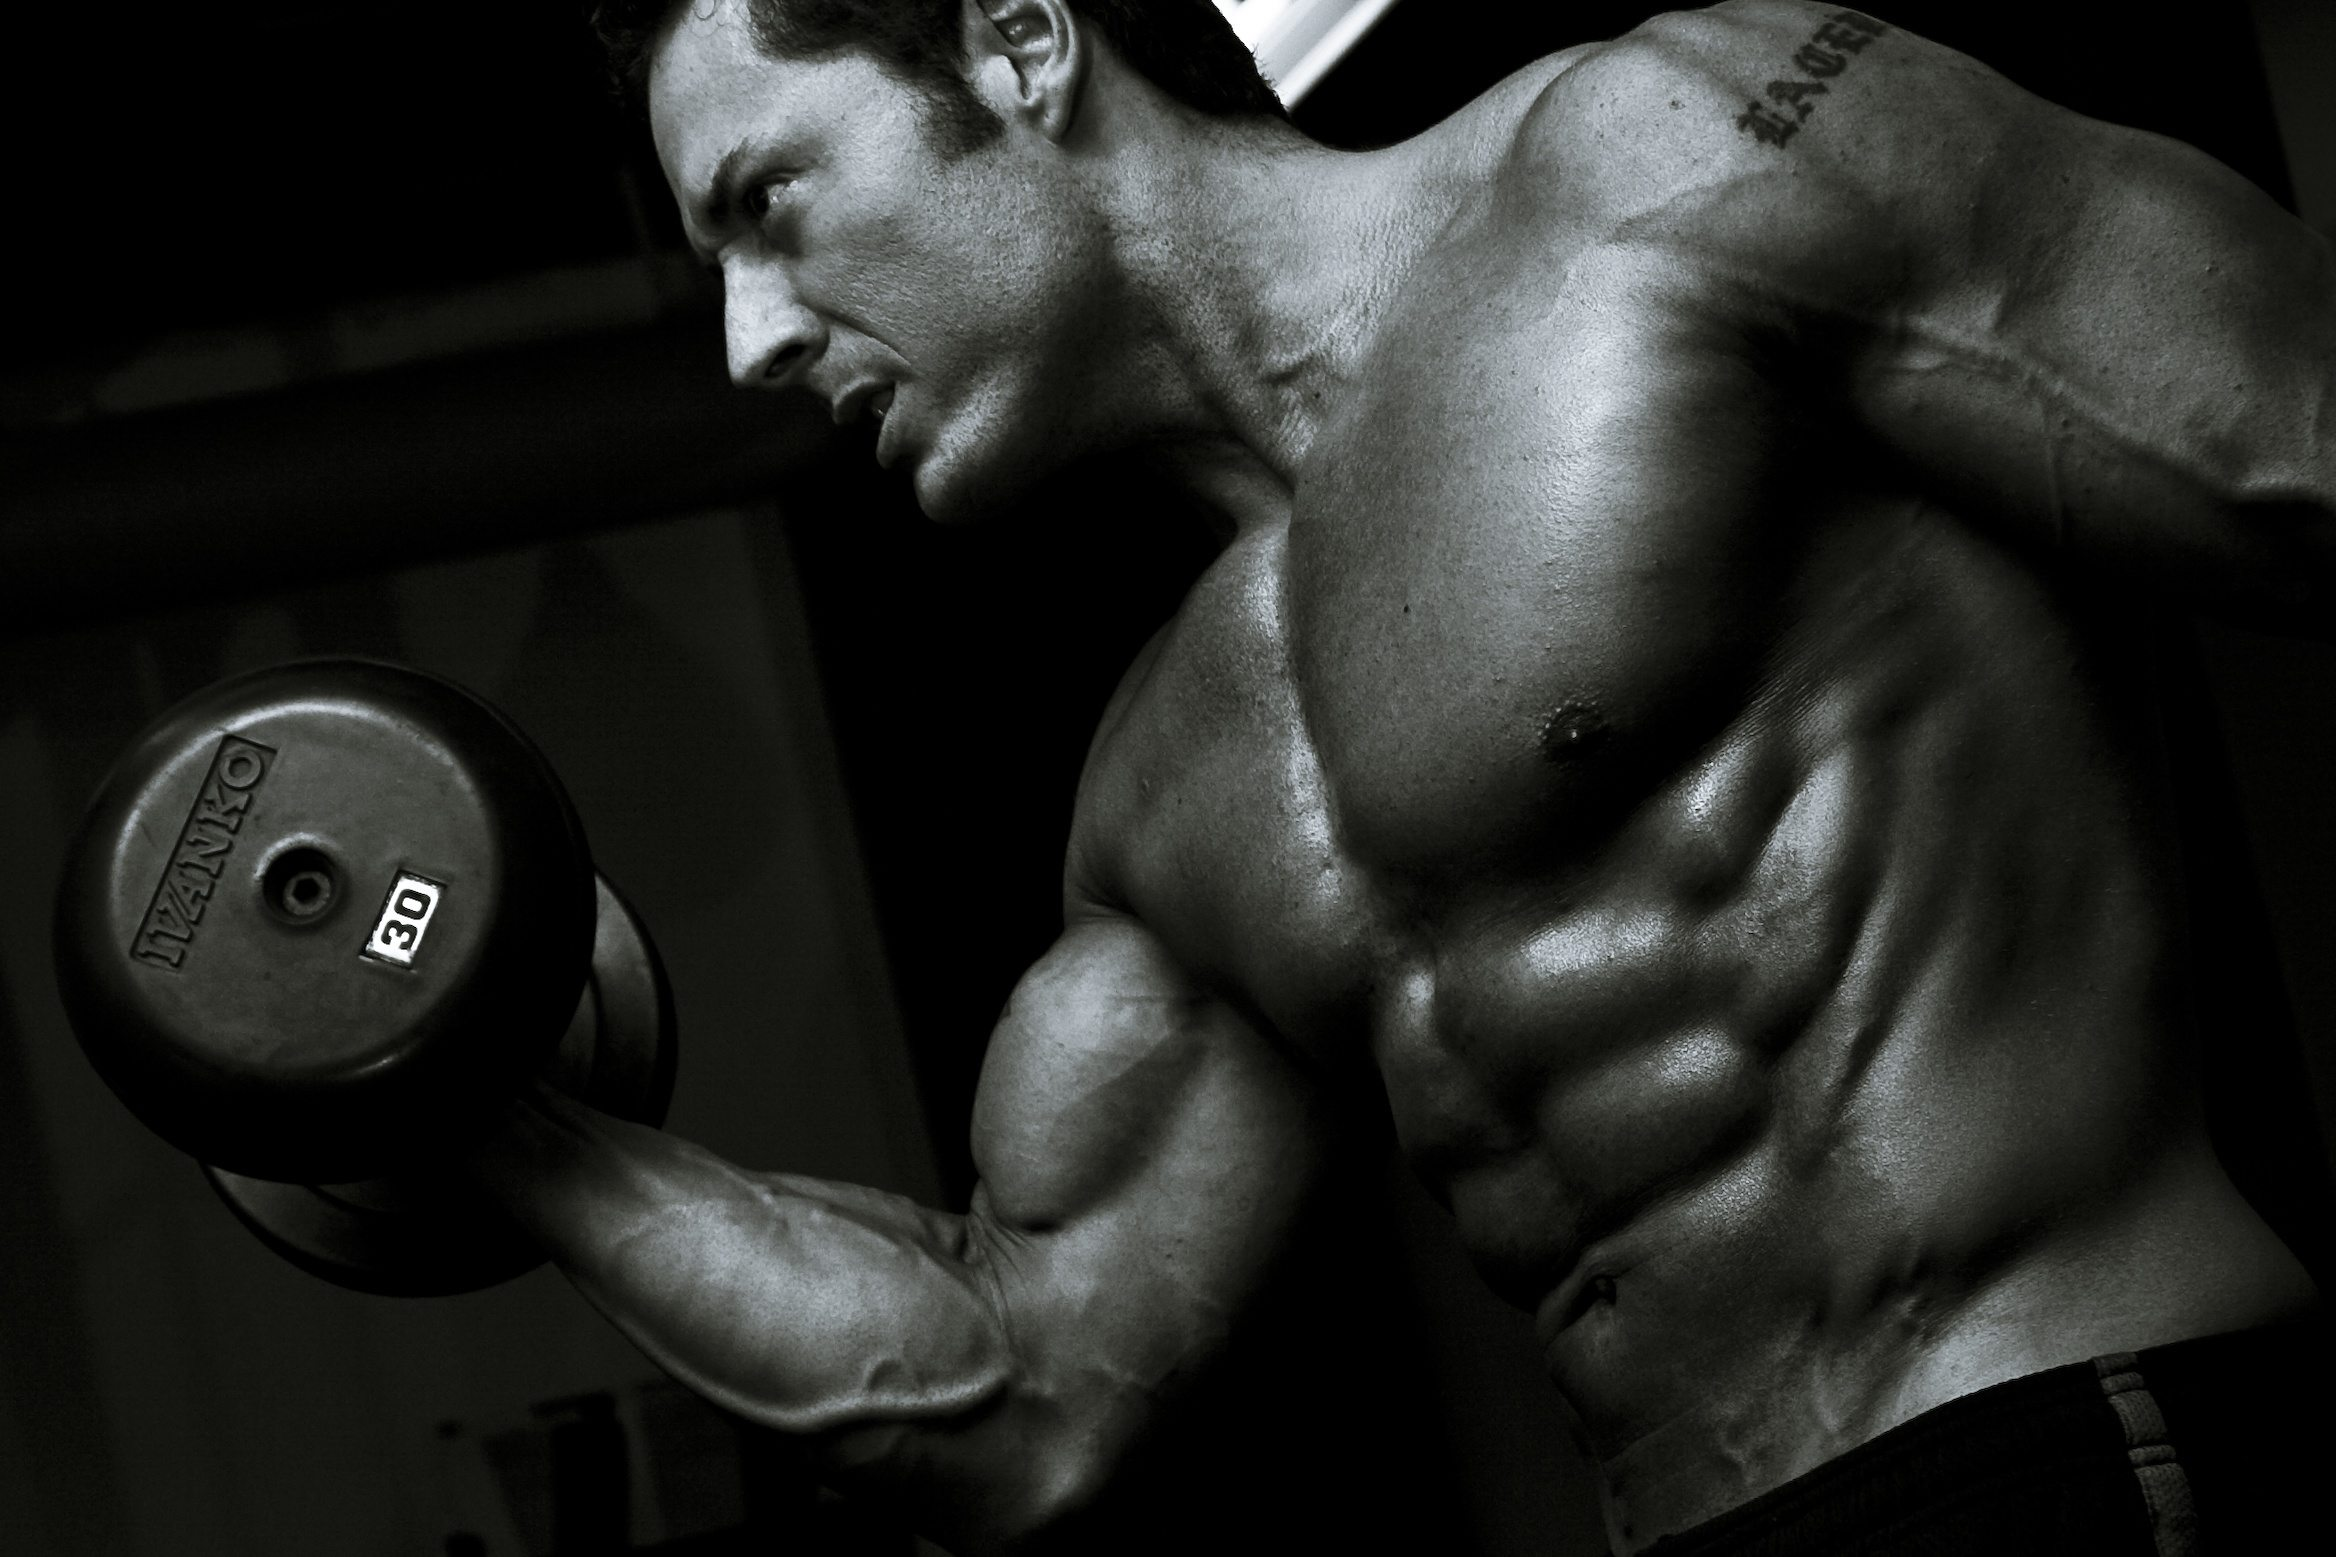 Drop Sets to Add Muscle and Get Ripped